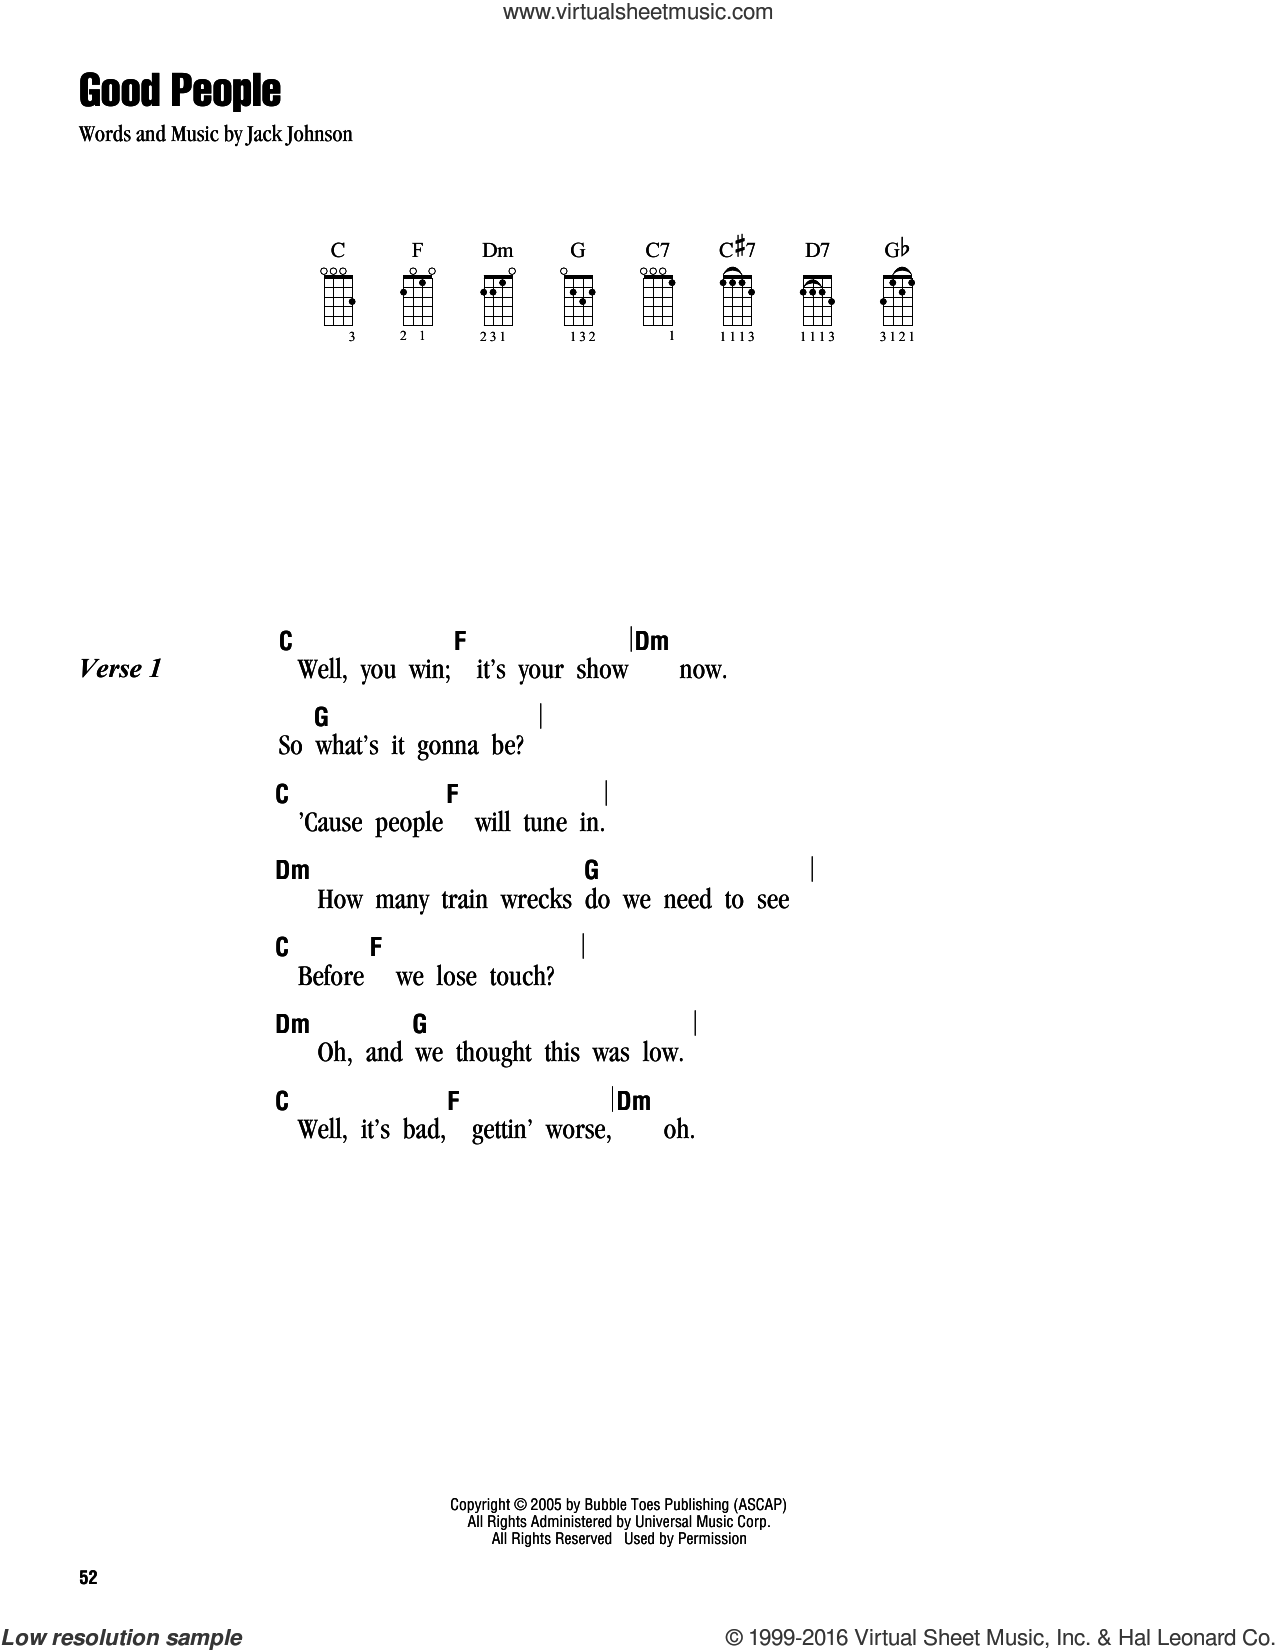 Good People sheet music for ukulele (chords) by Jack Johnson, intermediate